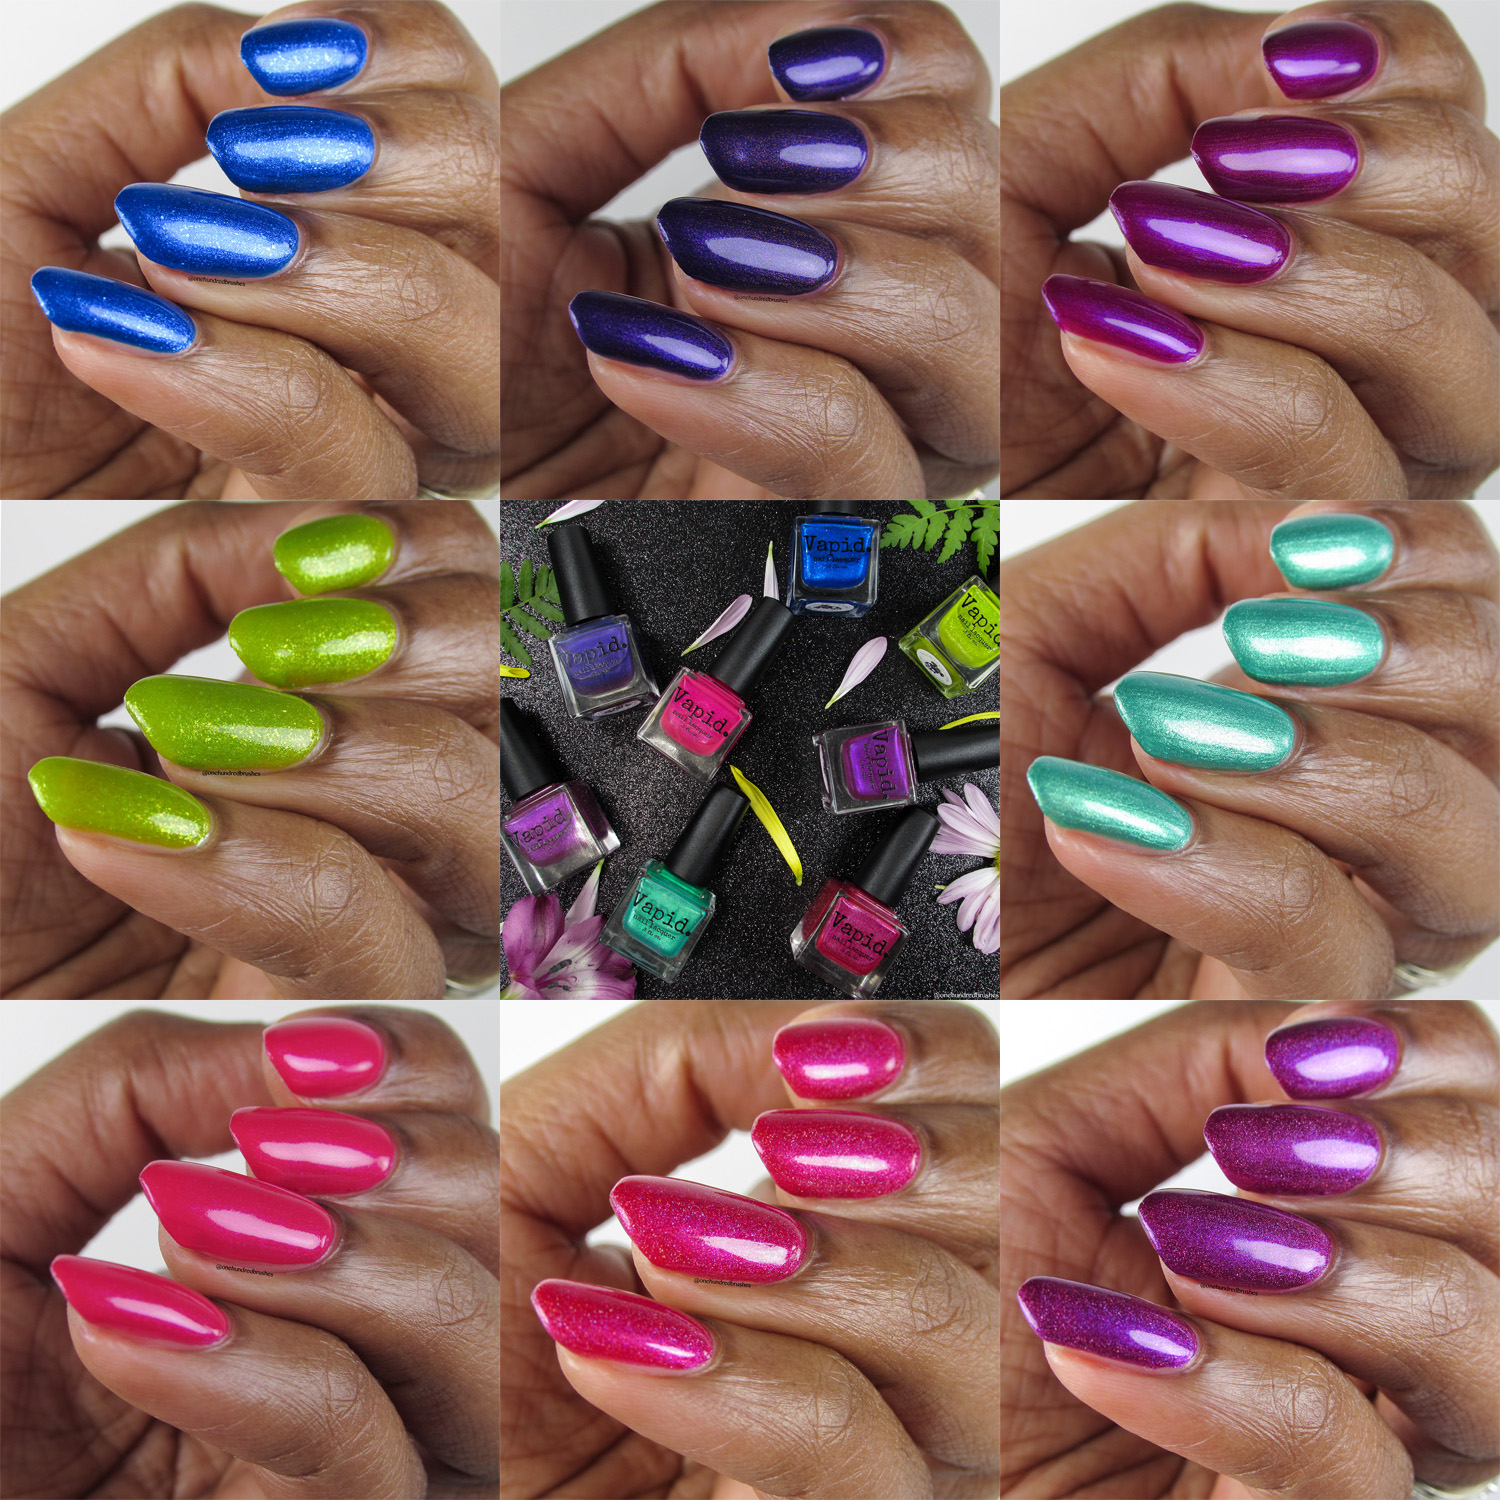 Vapid April 2018 Releases Angle collage, spring polishes, shimmer polishes, holographic,